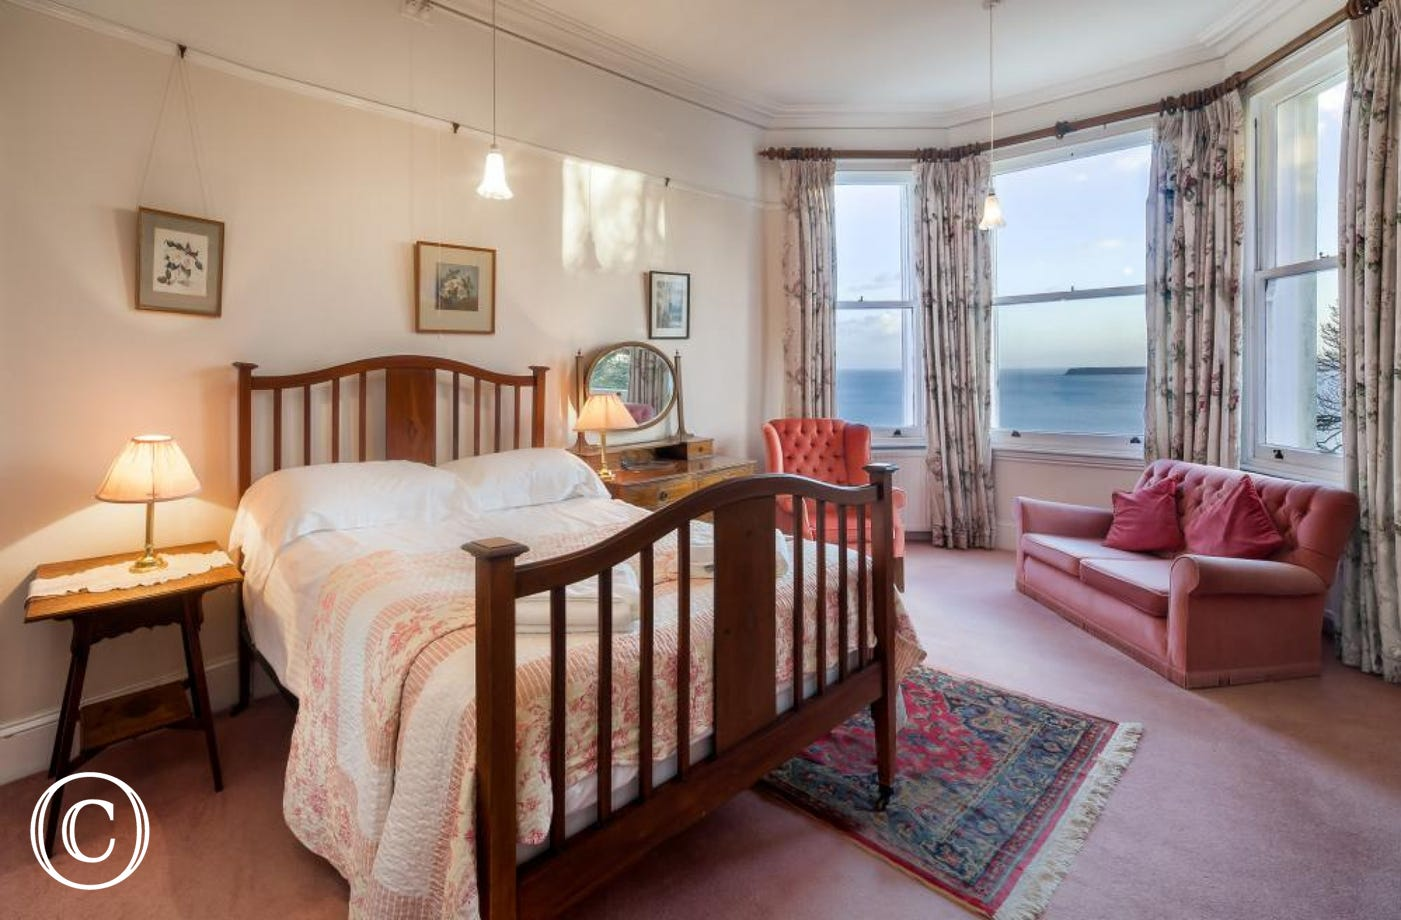 Longcroft House, Torquay - Bedroom 2 with sea views